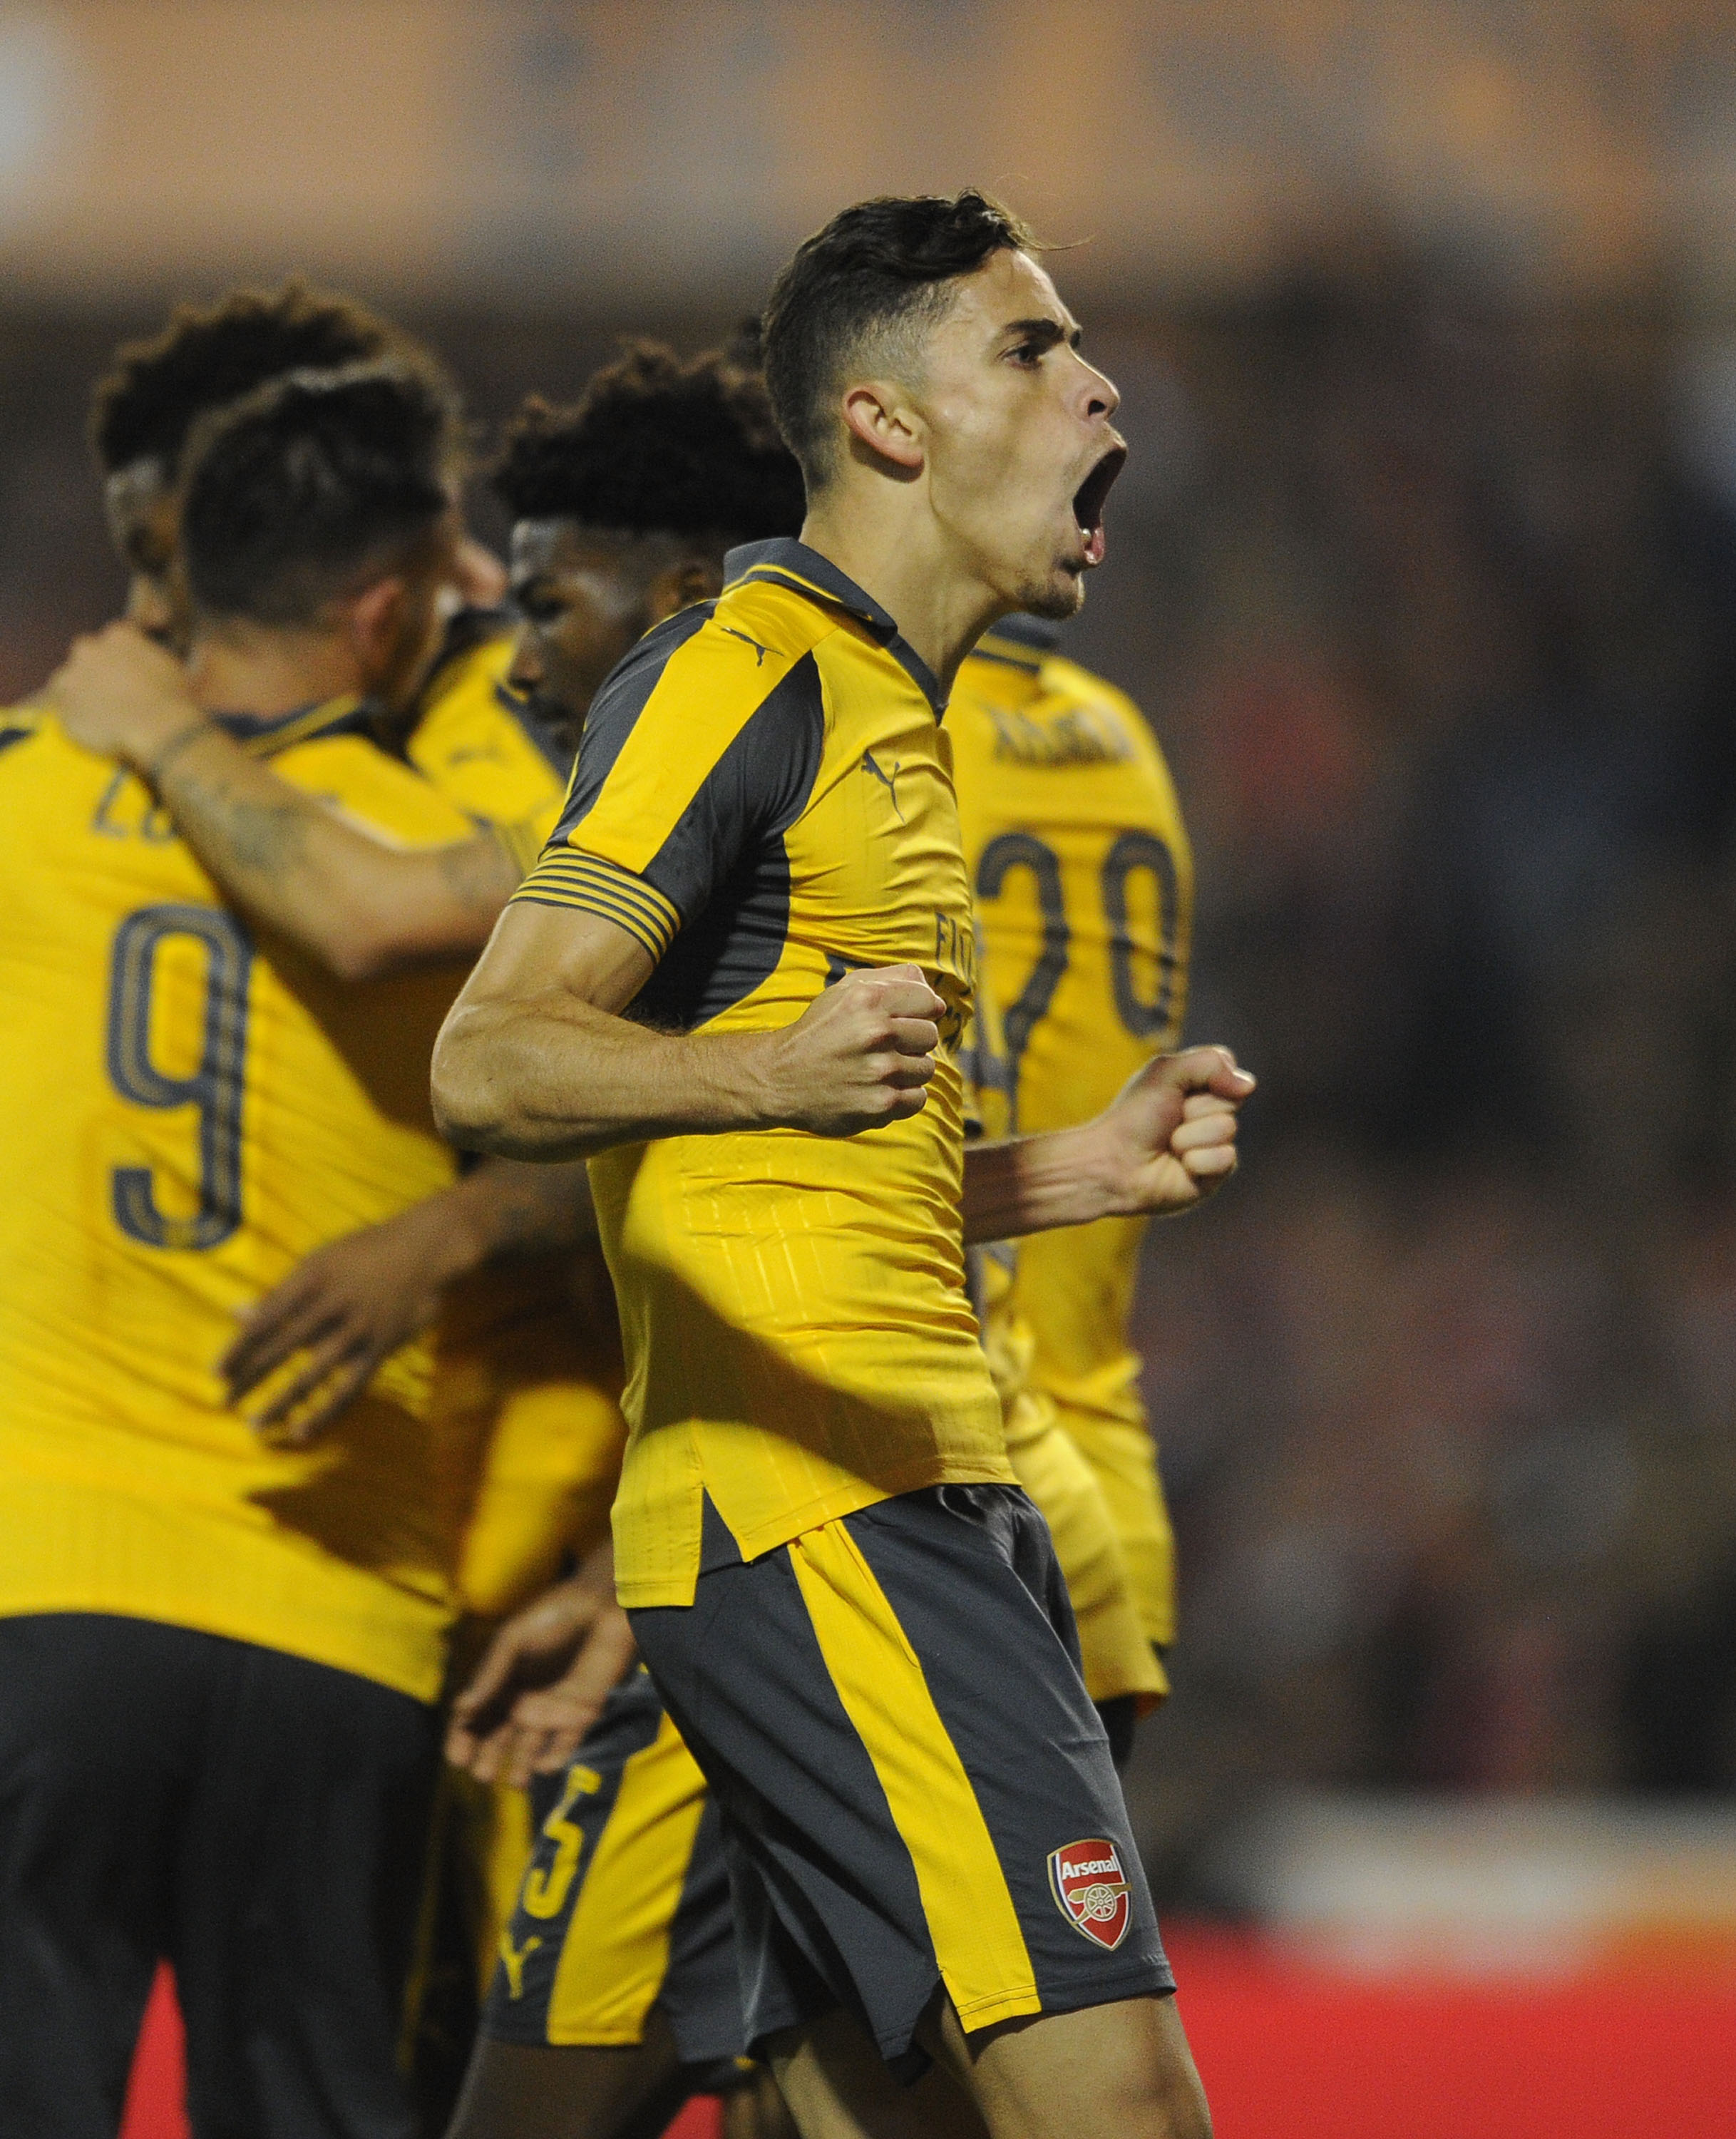 Arsenal: Gabriel's Sudden Change Can Only Be Positive